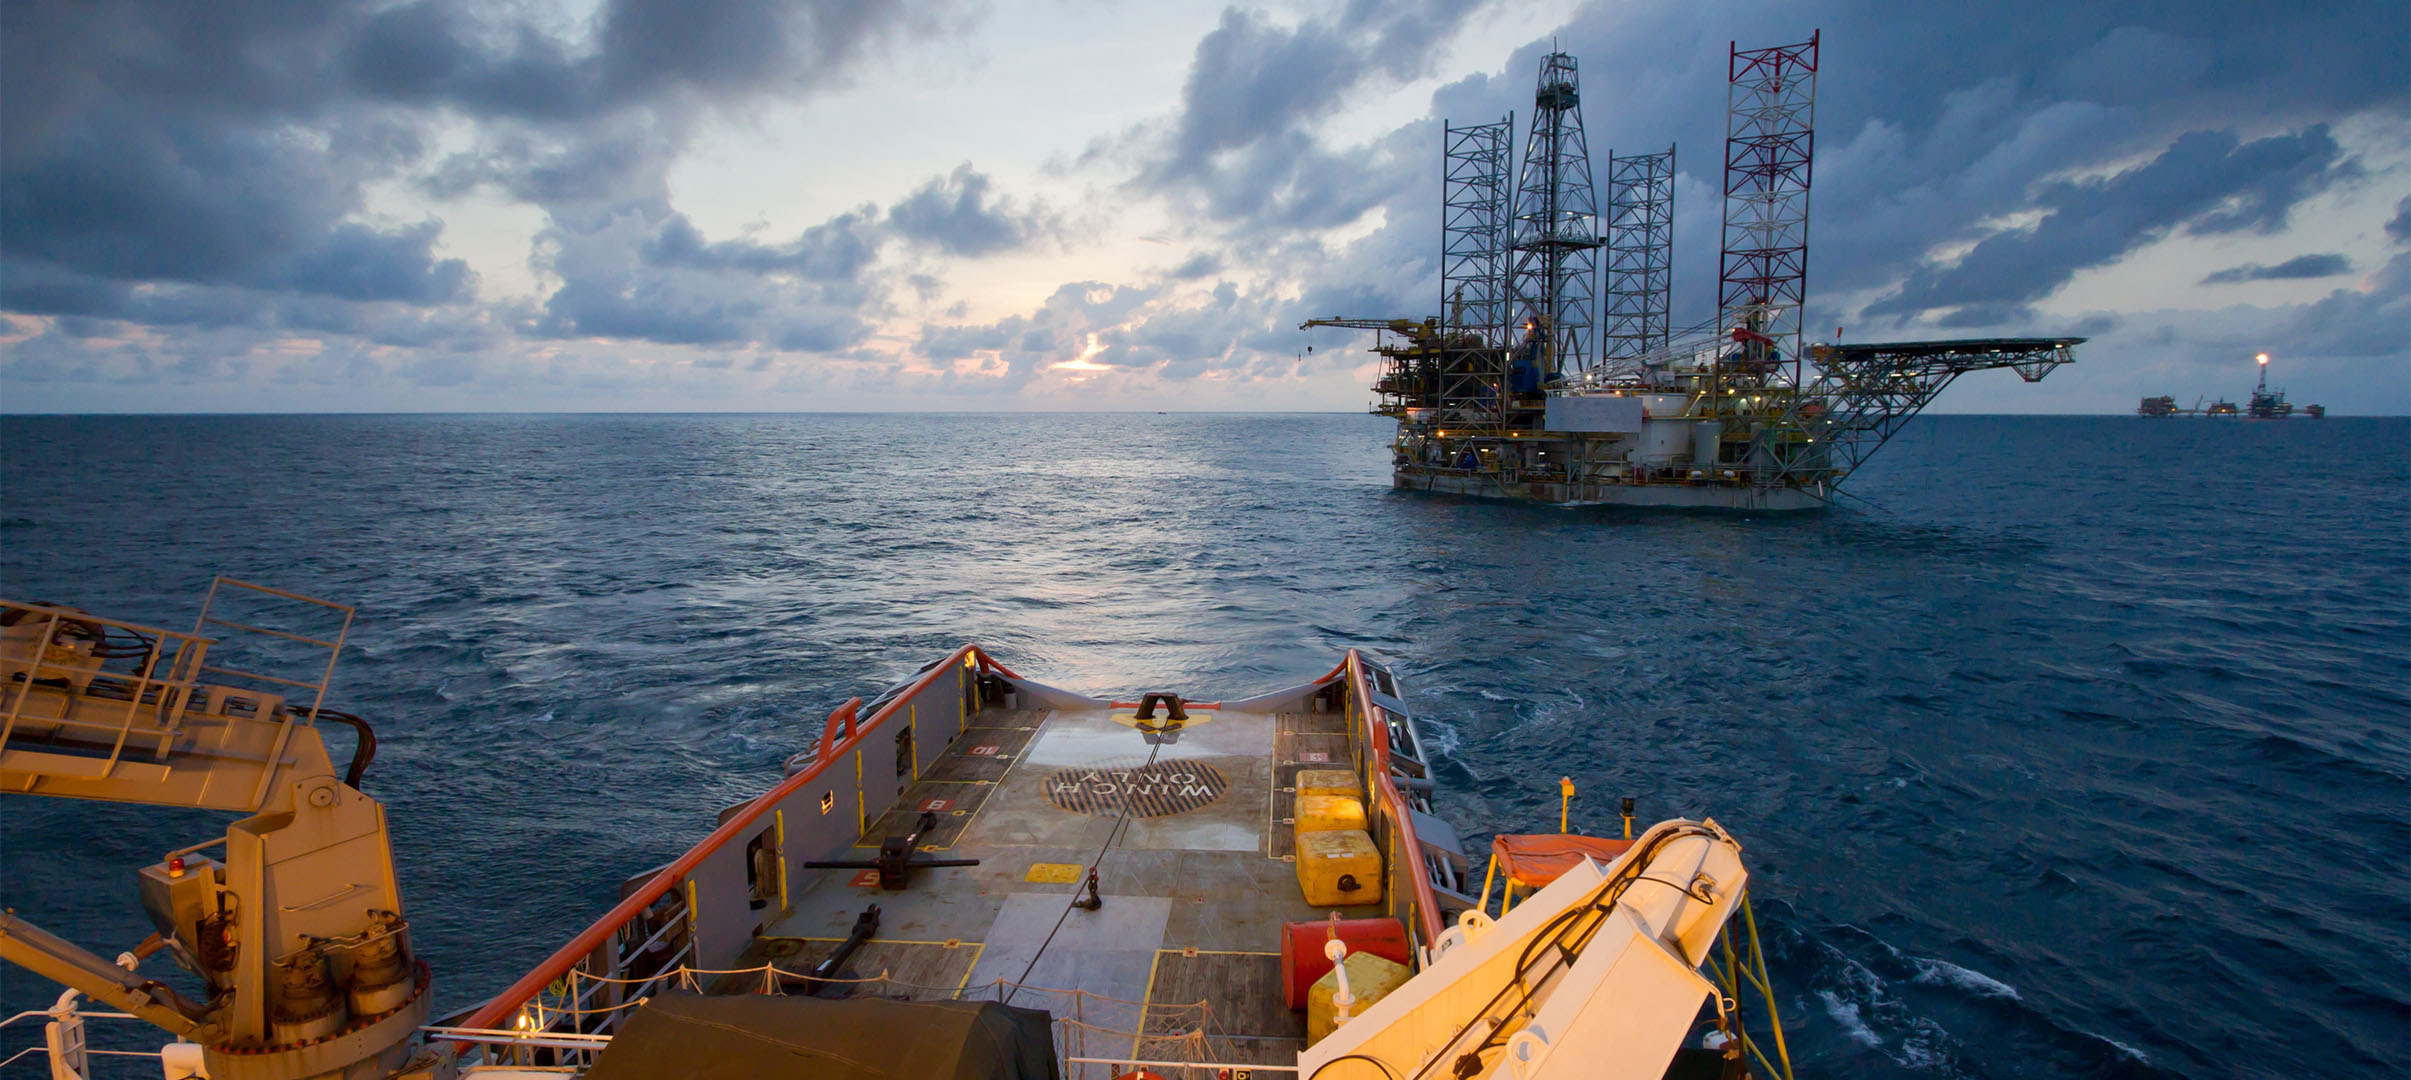 Remember why you started <h2>careers & projects in maritime technology</h2>